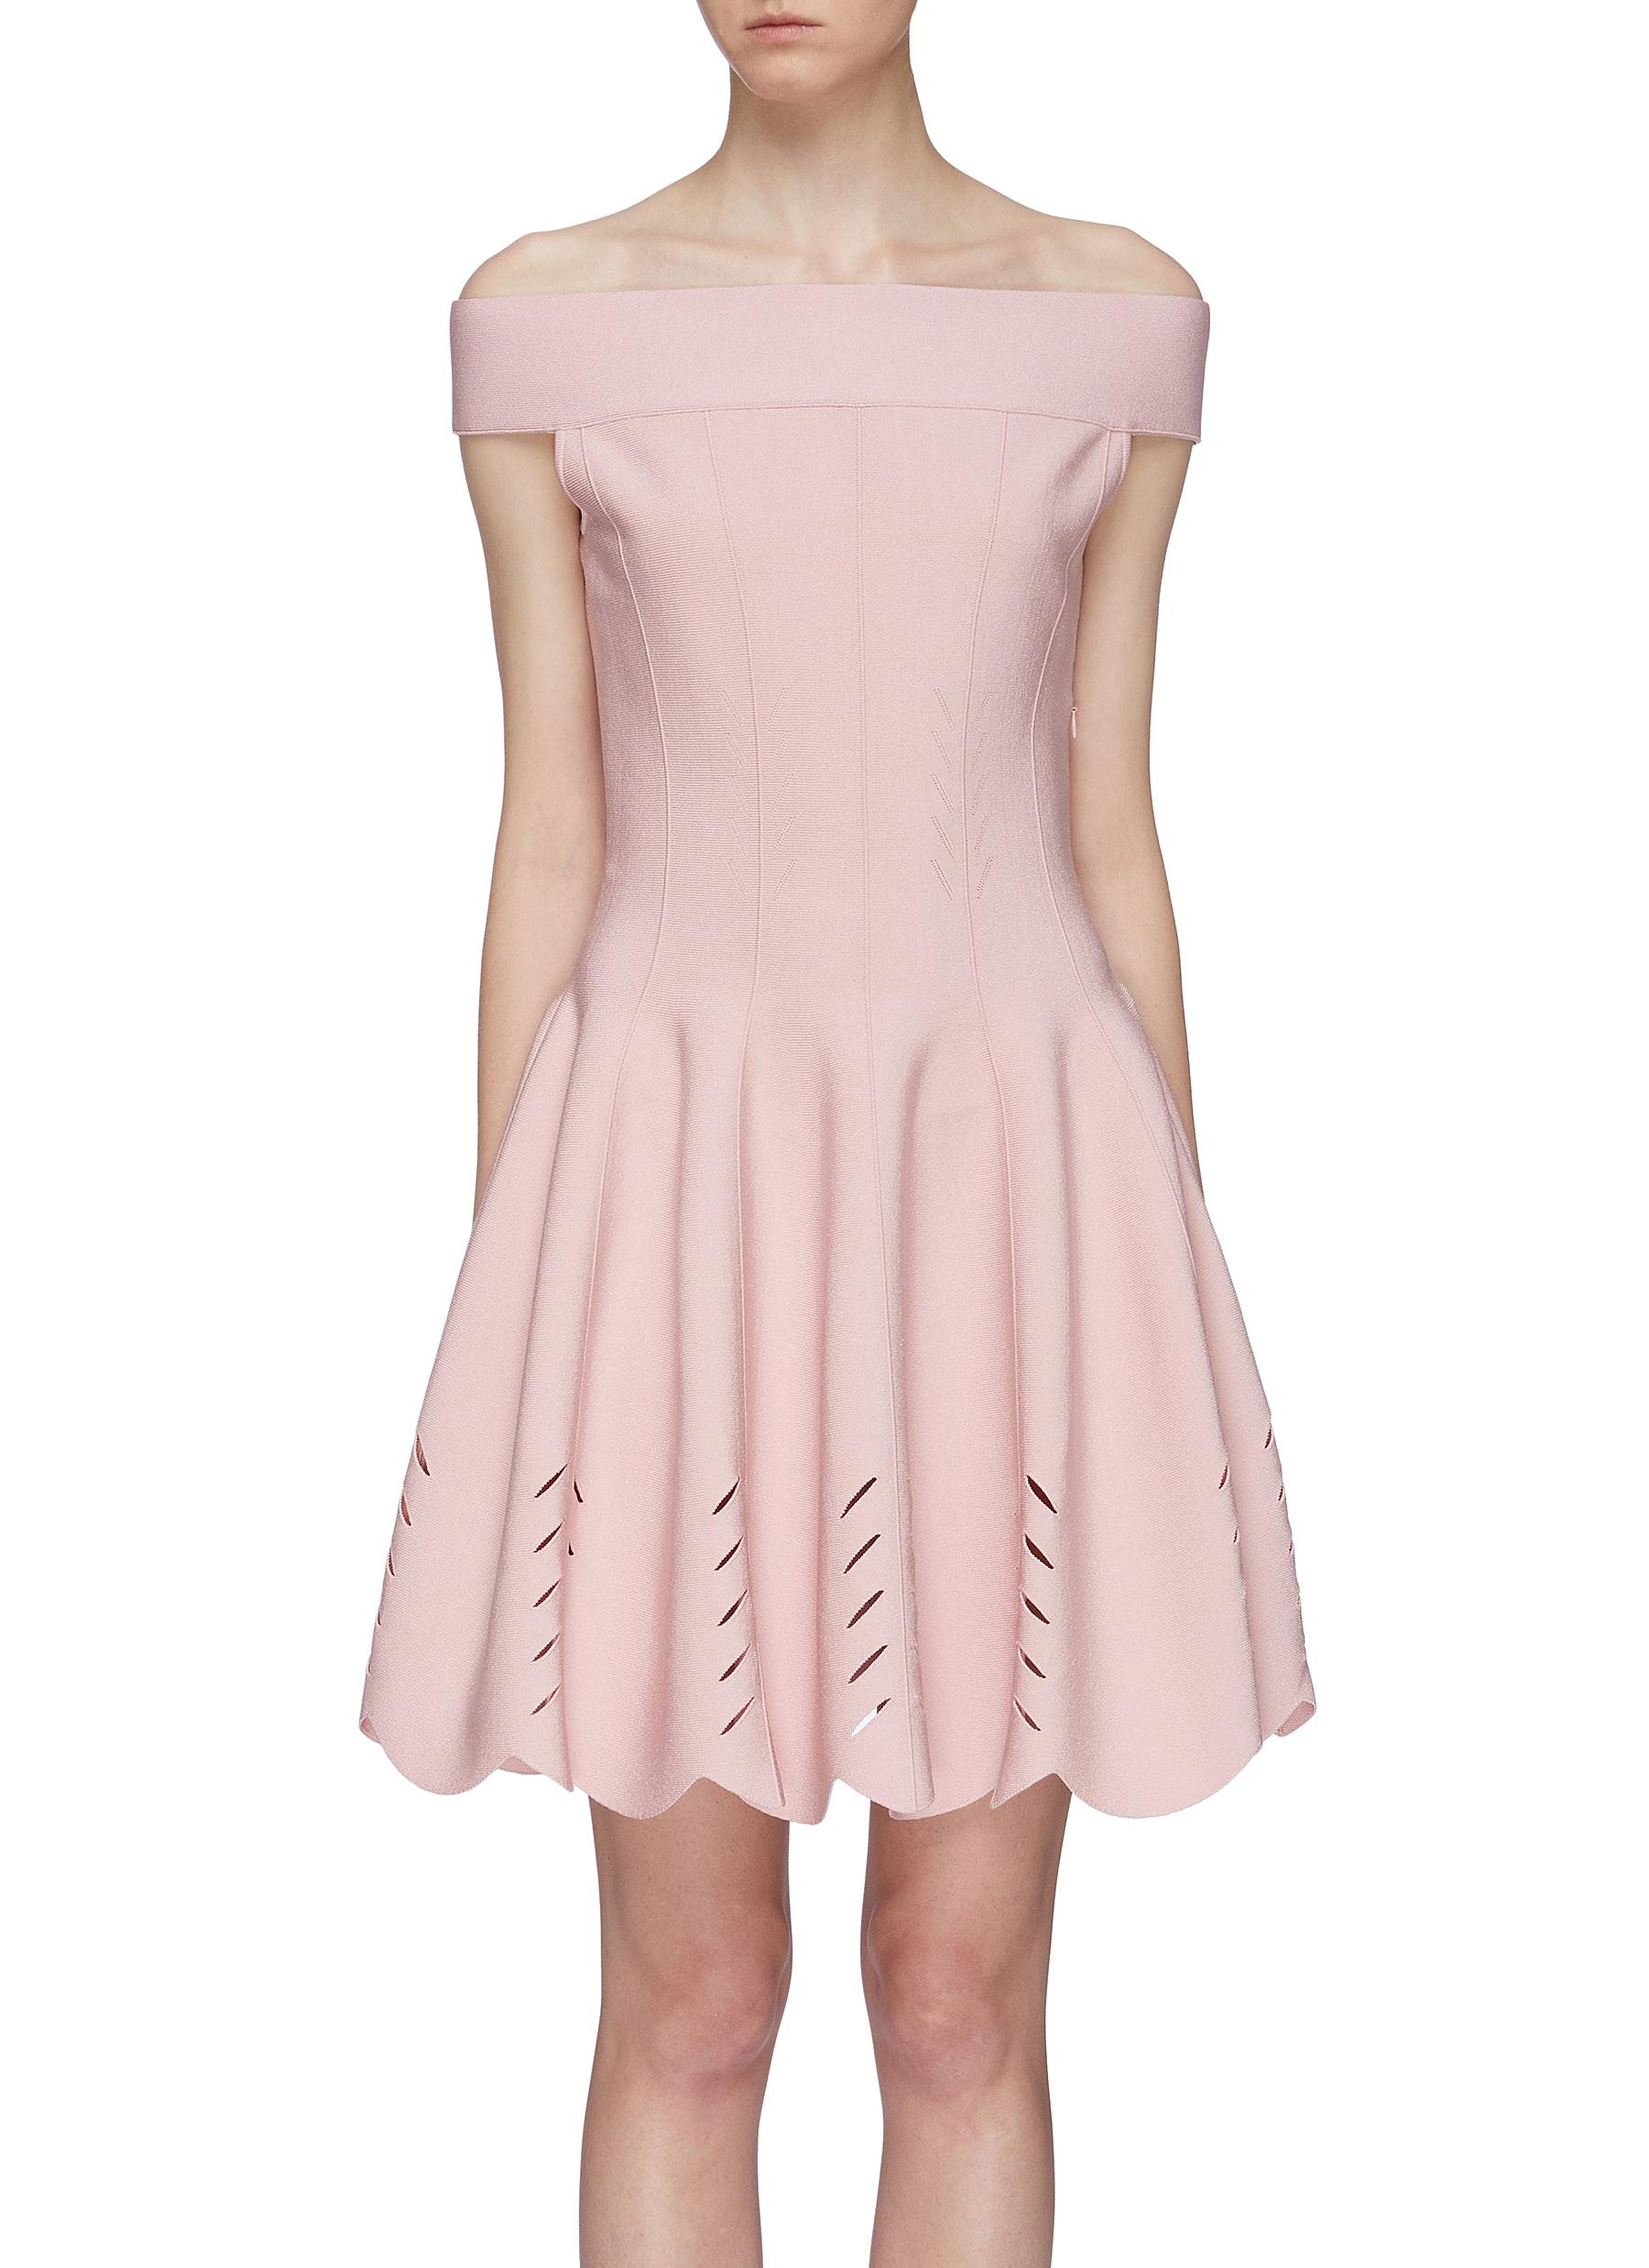 Darted cutout scalloped hem off-shoulder dress by Alexander Mcqueen